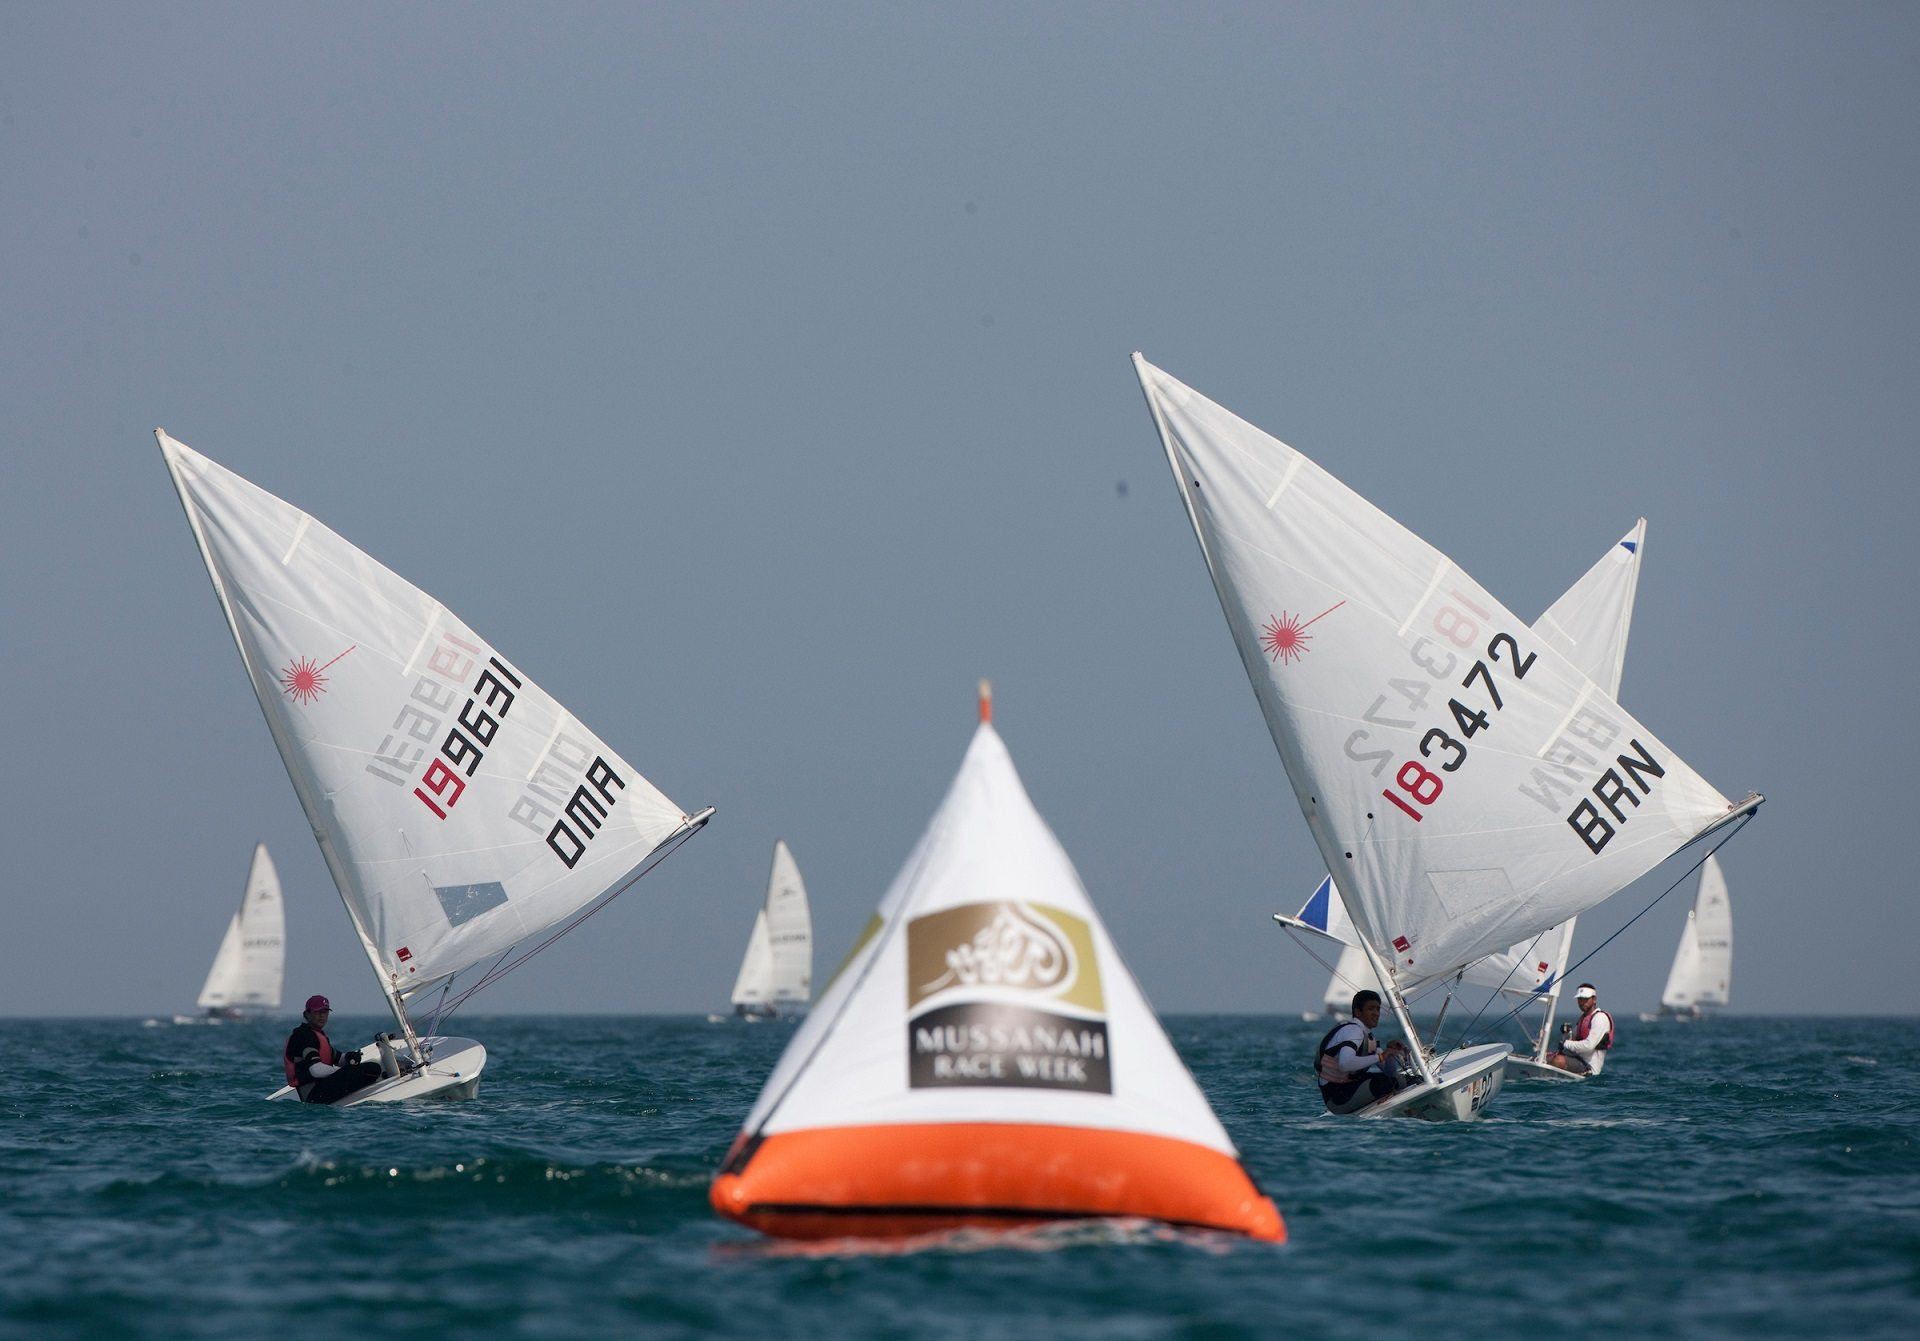 Mussanah Race Week 2018 is ready to welcome young and talented international sailors